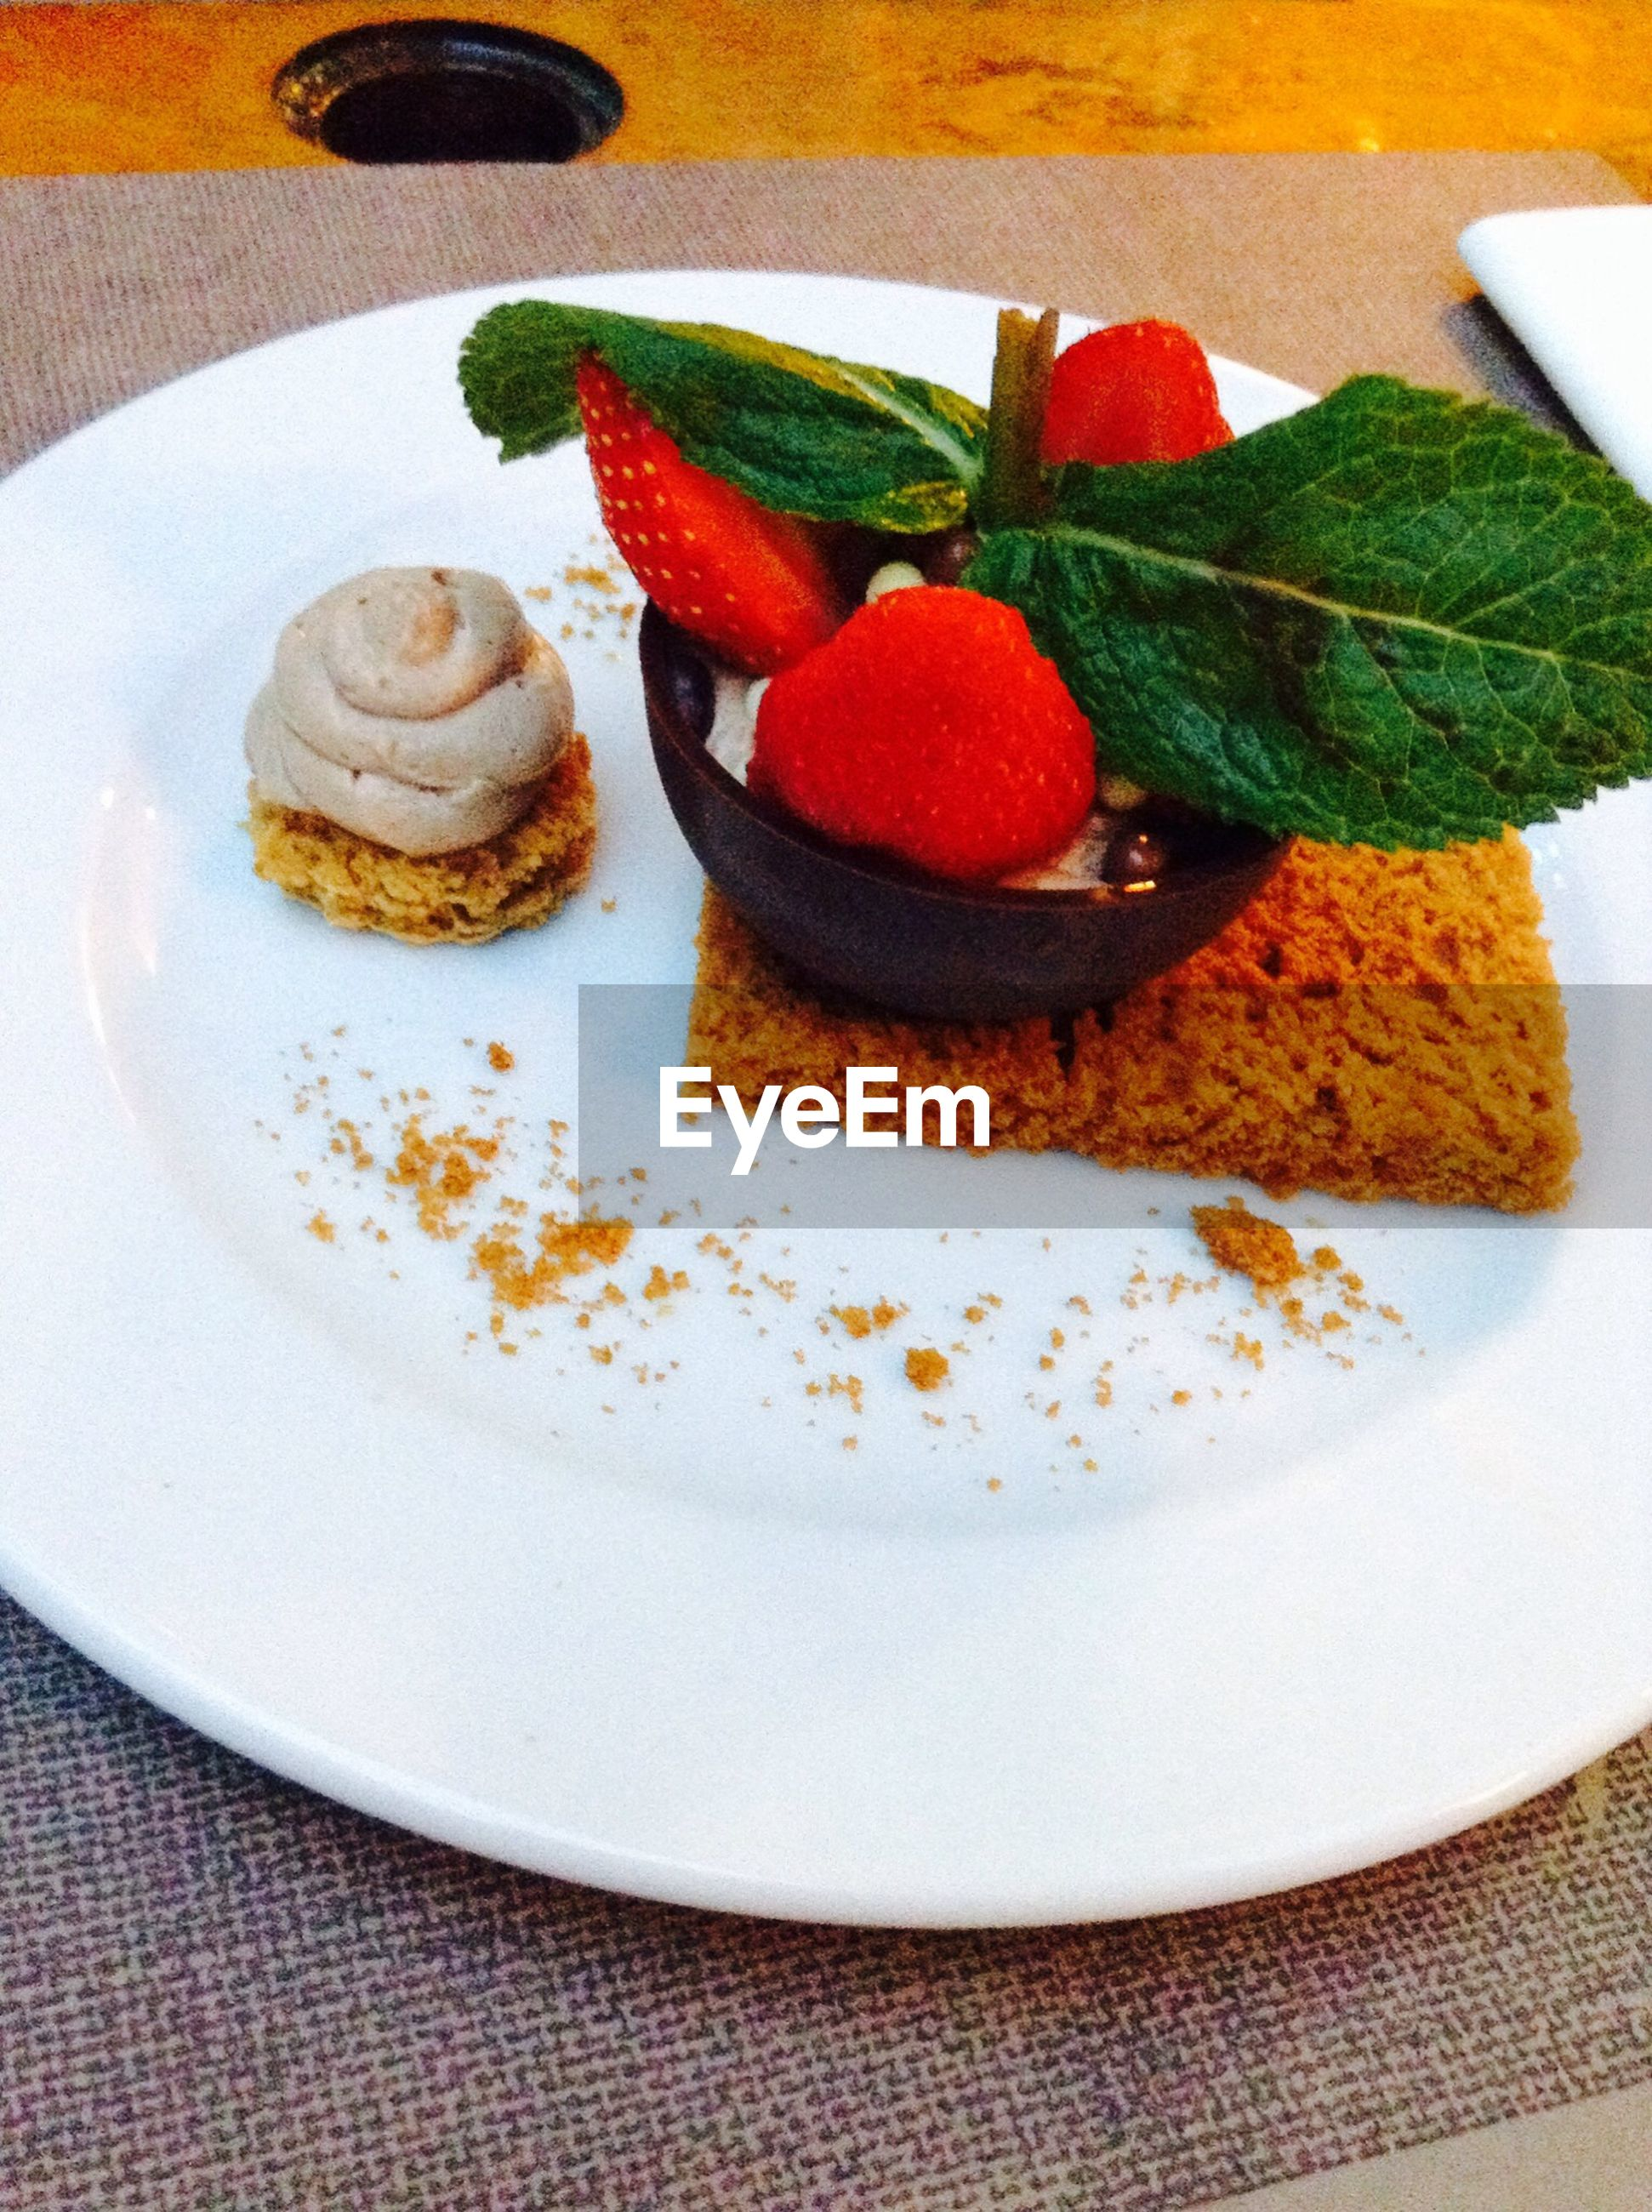 food and drink, food, indoors, freshness, plate, ready-to-eat, still life, sweet food, indulgence, table, serving size, dessert, high angle view, unhealthy eating, close-up, cake, temptation, meal, served